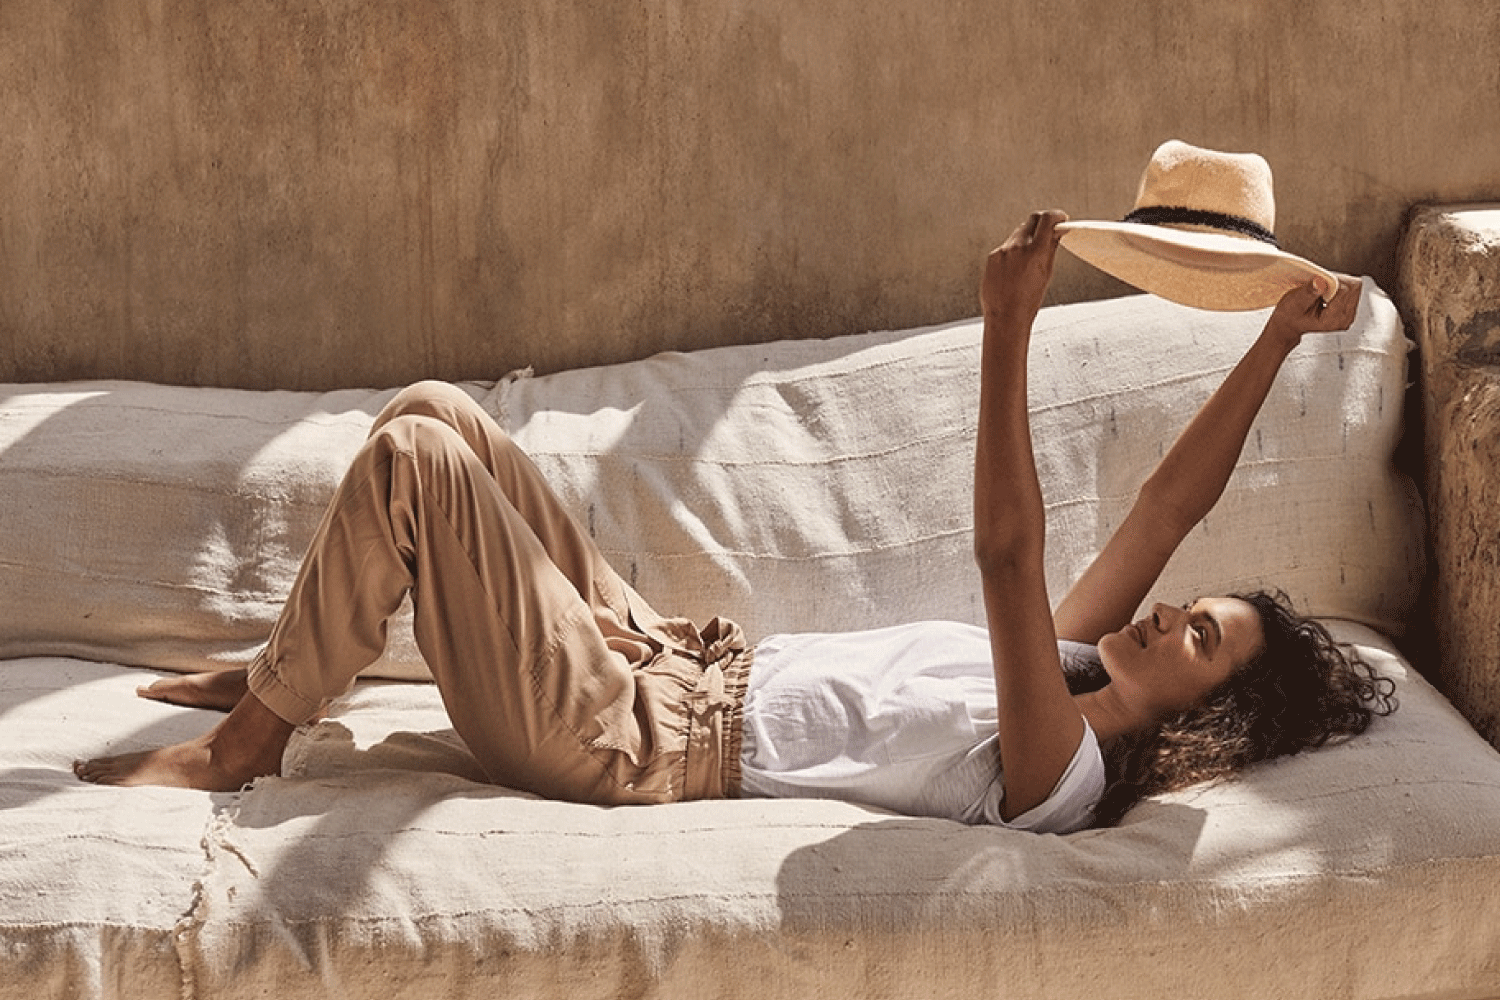 Why the Kustomer experience matters to Abercrombie & Fitch Co